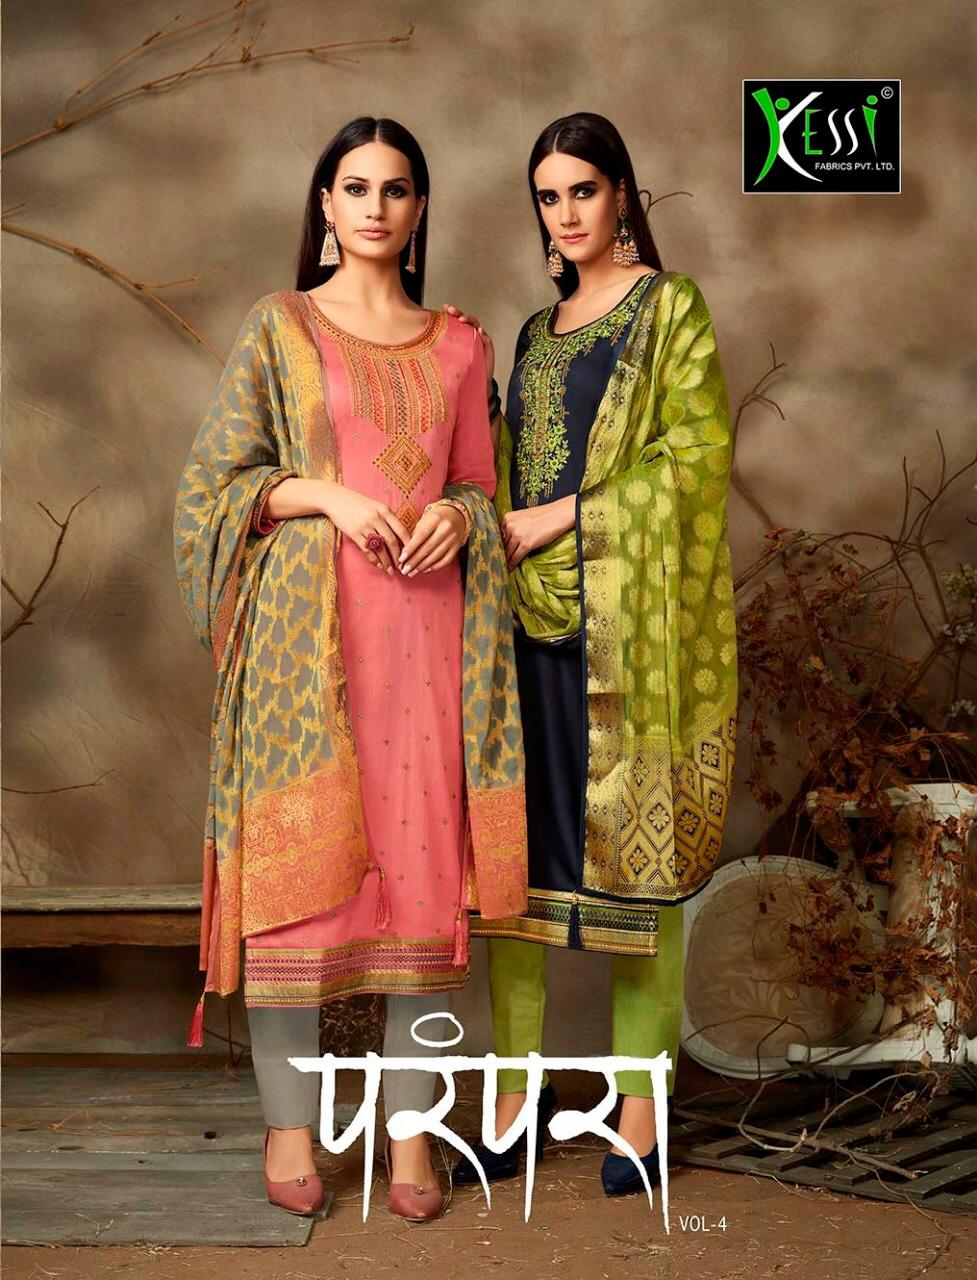 Kessi Fabric Parampara Vol4 New Fancy Suits Wholsale